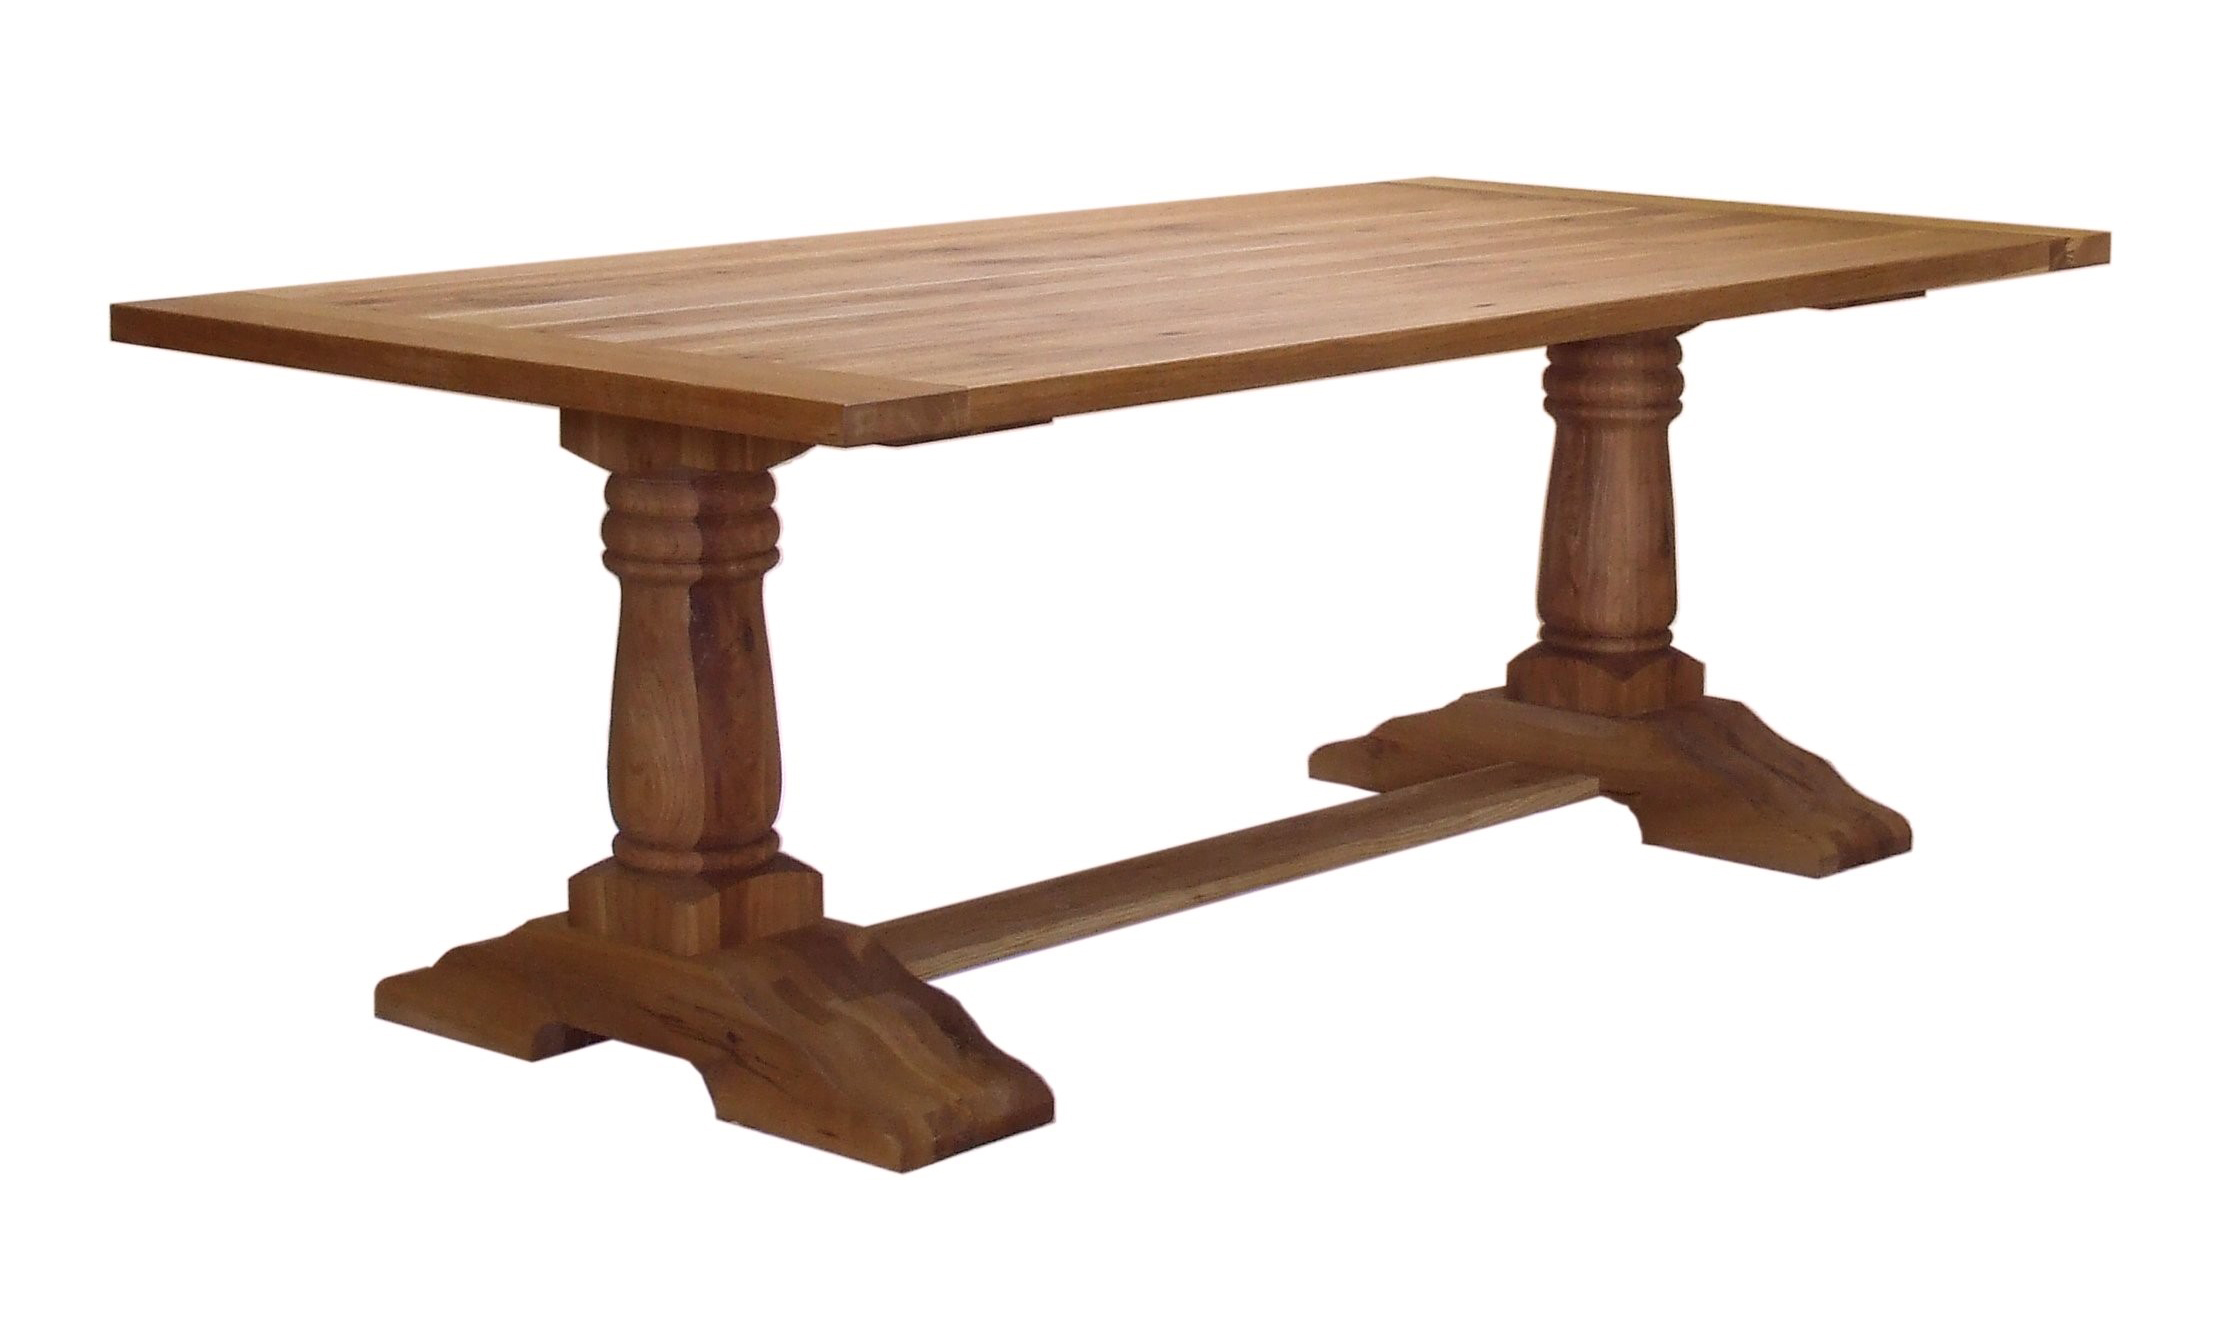 valencia oak furniture oak dining tables reviews : oak solid oak refectory table from www.comparestoreprices.co.uk size 2220 x 1344 jpeg 557kB